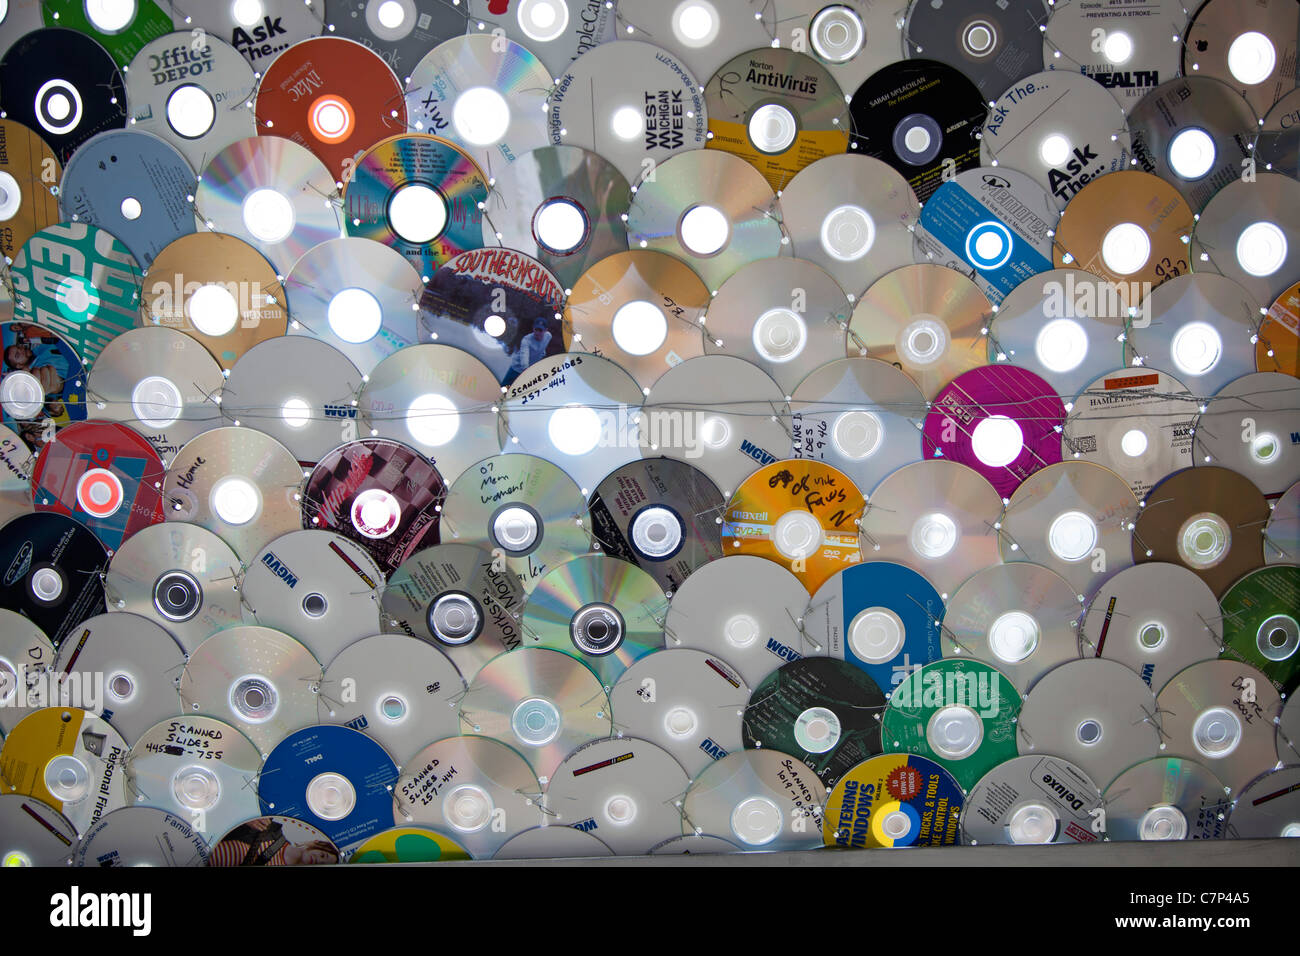 Art Work Made of Old CDs - Stock Image